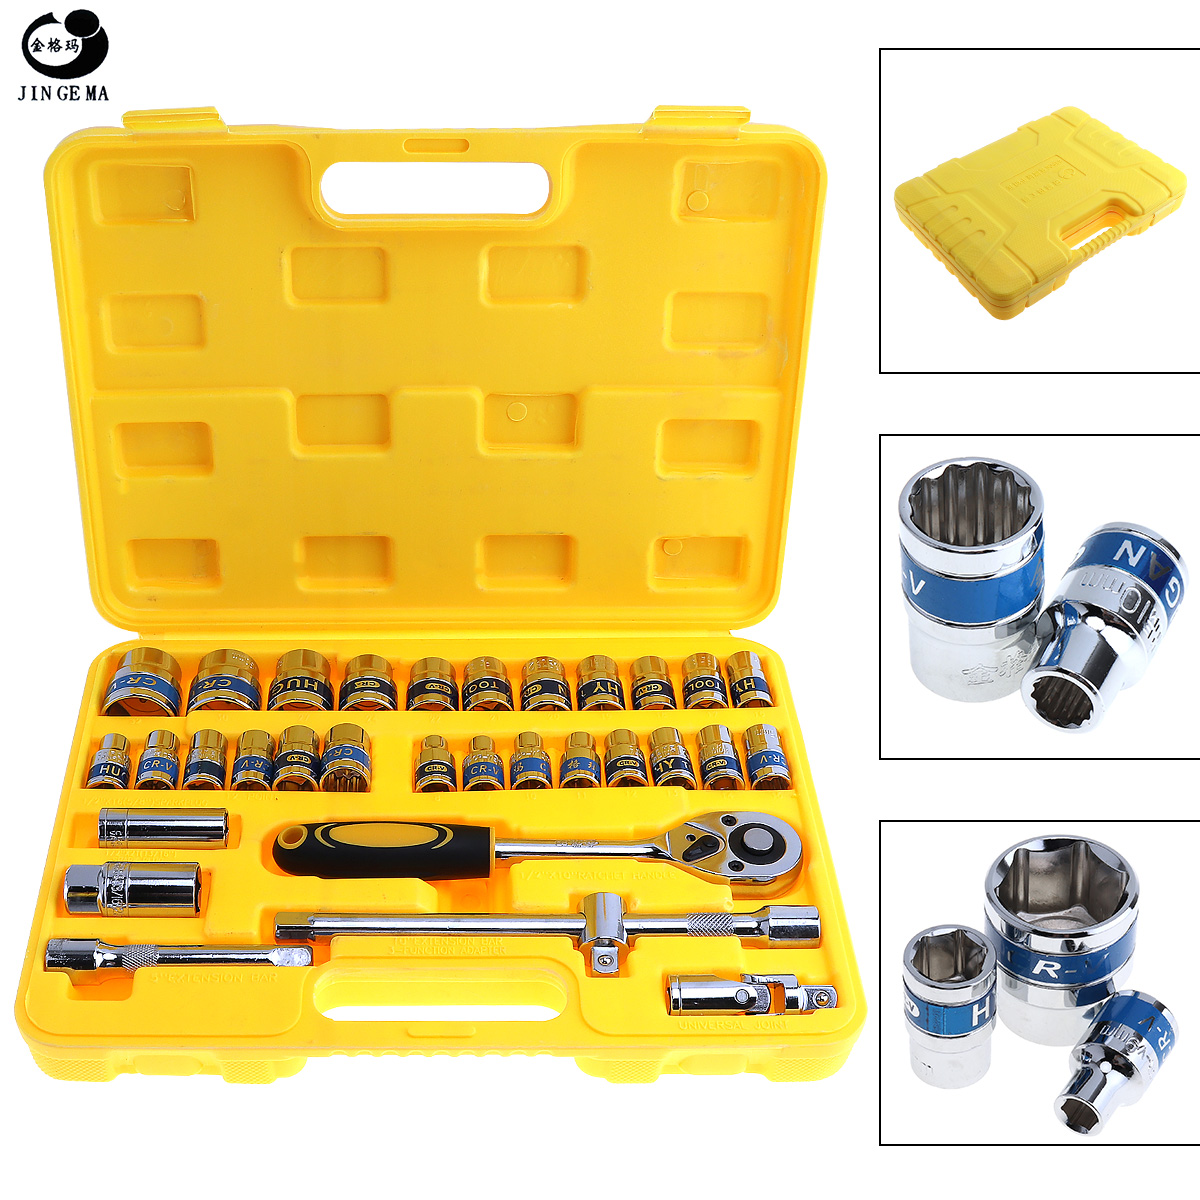 Sale 32pcs/set 1/2 Inch Automobile Motorcycle Car Repair Tool Box Precision Socket Wrench Set Ratchet Torque Wrench Combo Kit